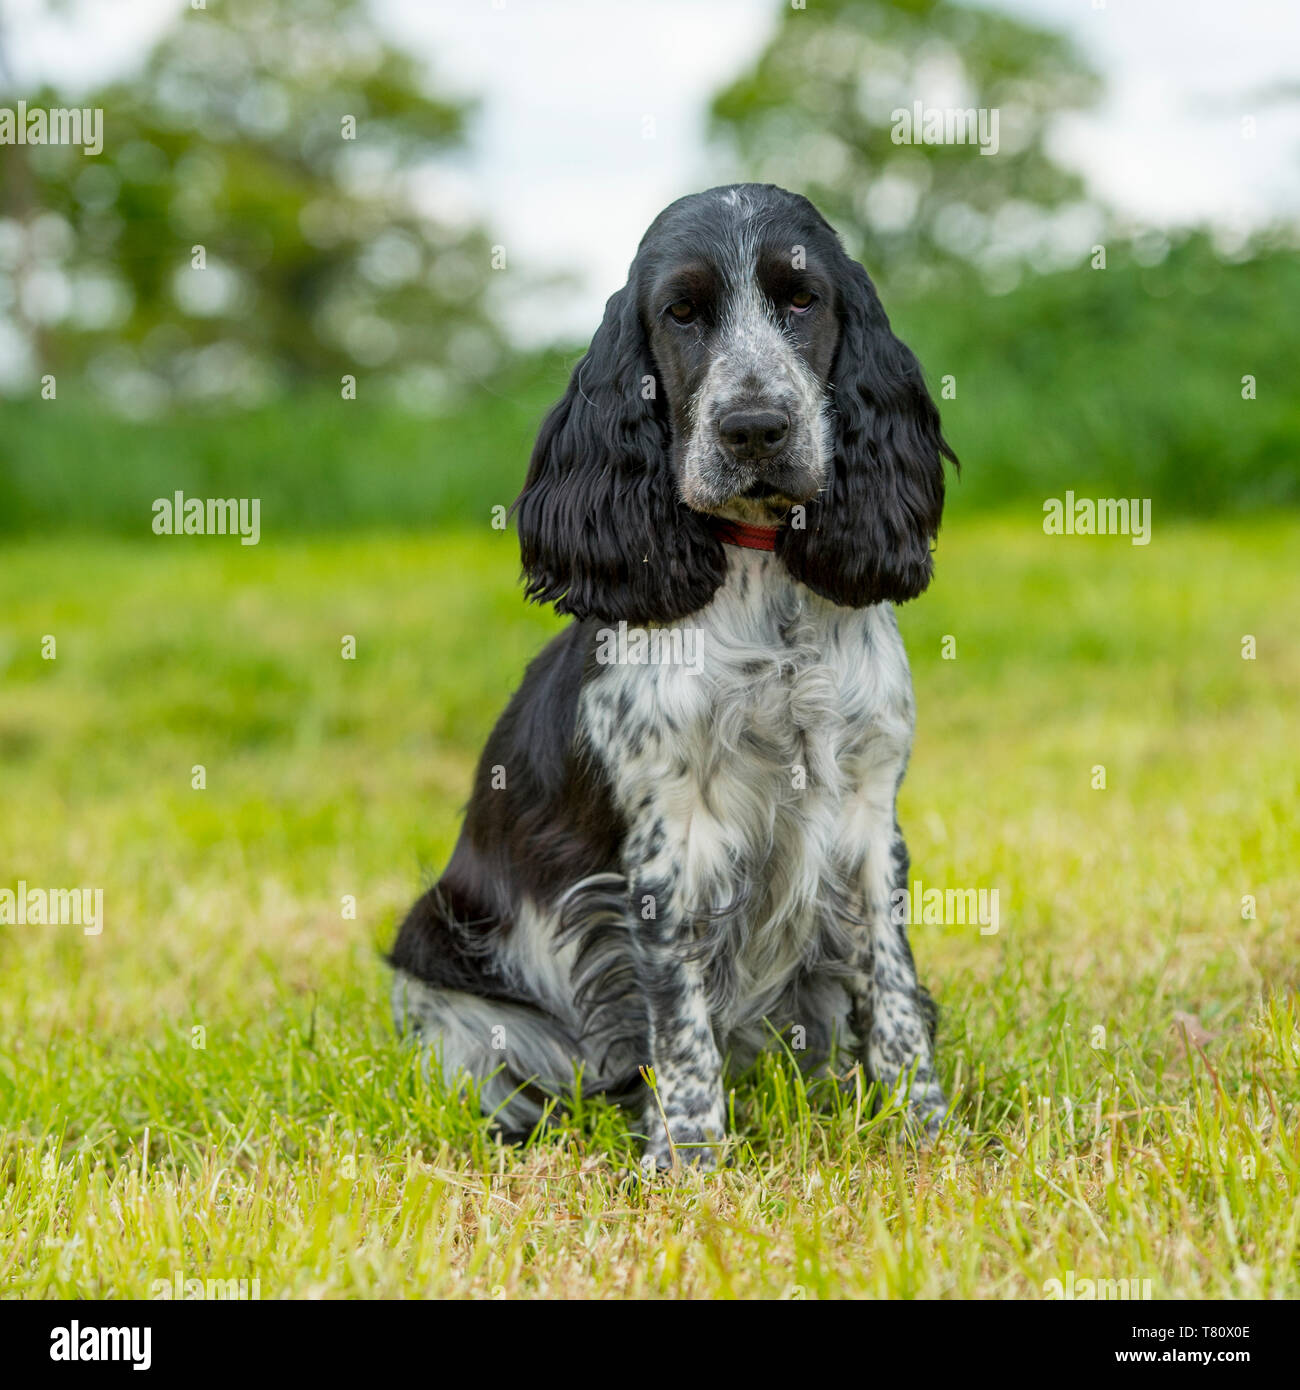 english cocker spaniel - Stock Image